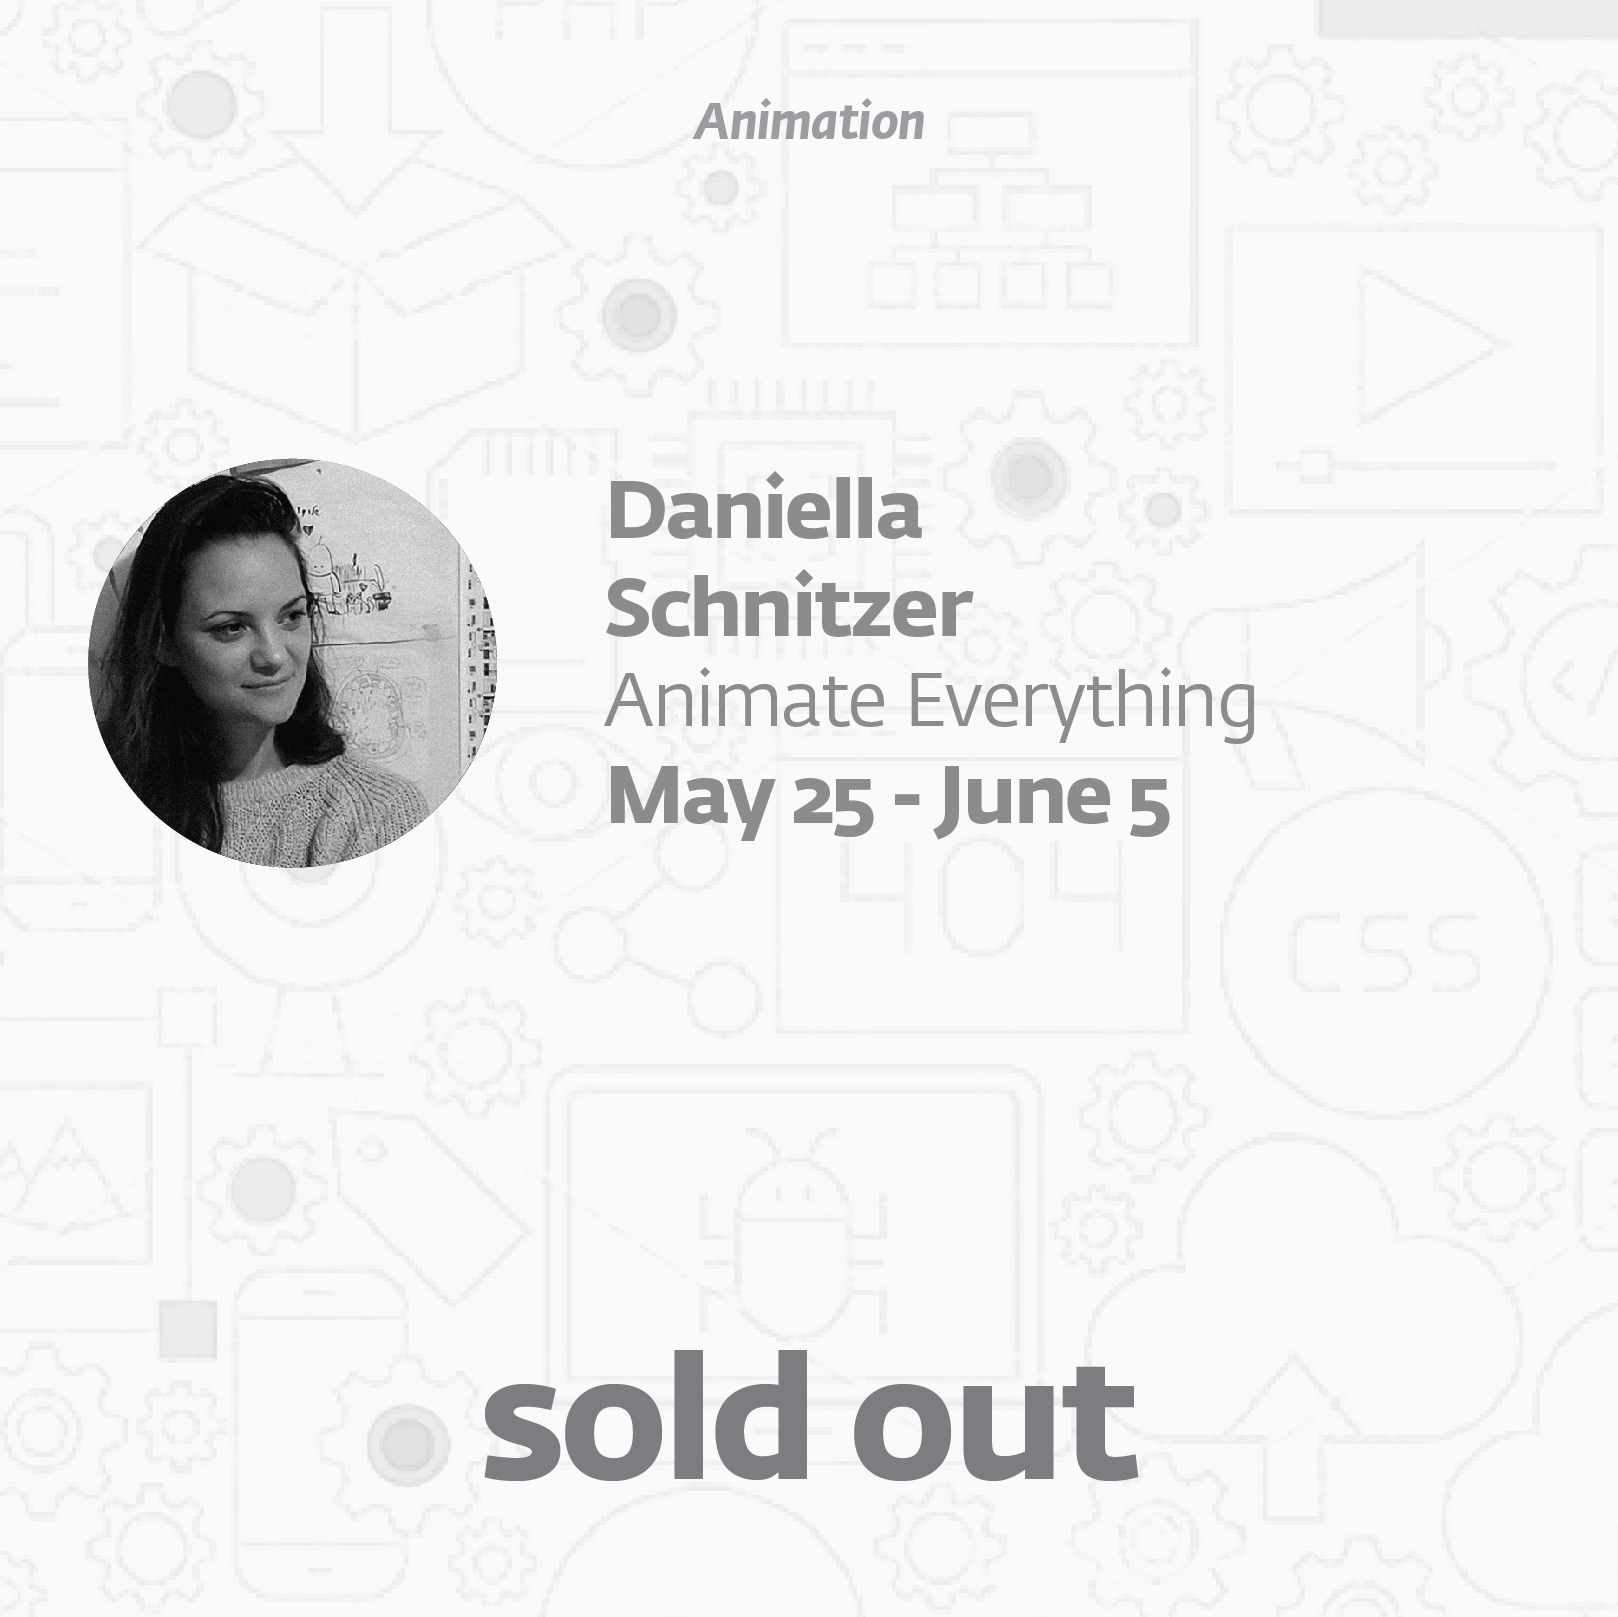 qarakusiner nor sold out1 04 - Summer From Home